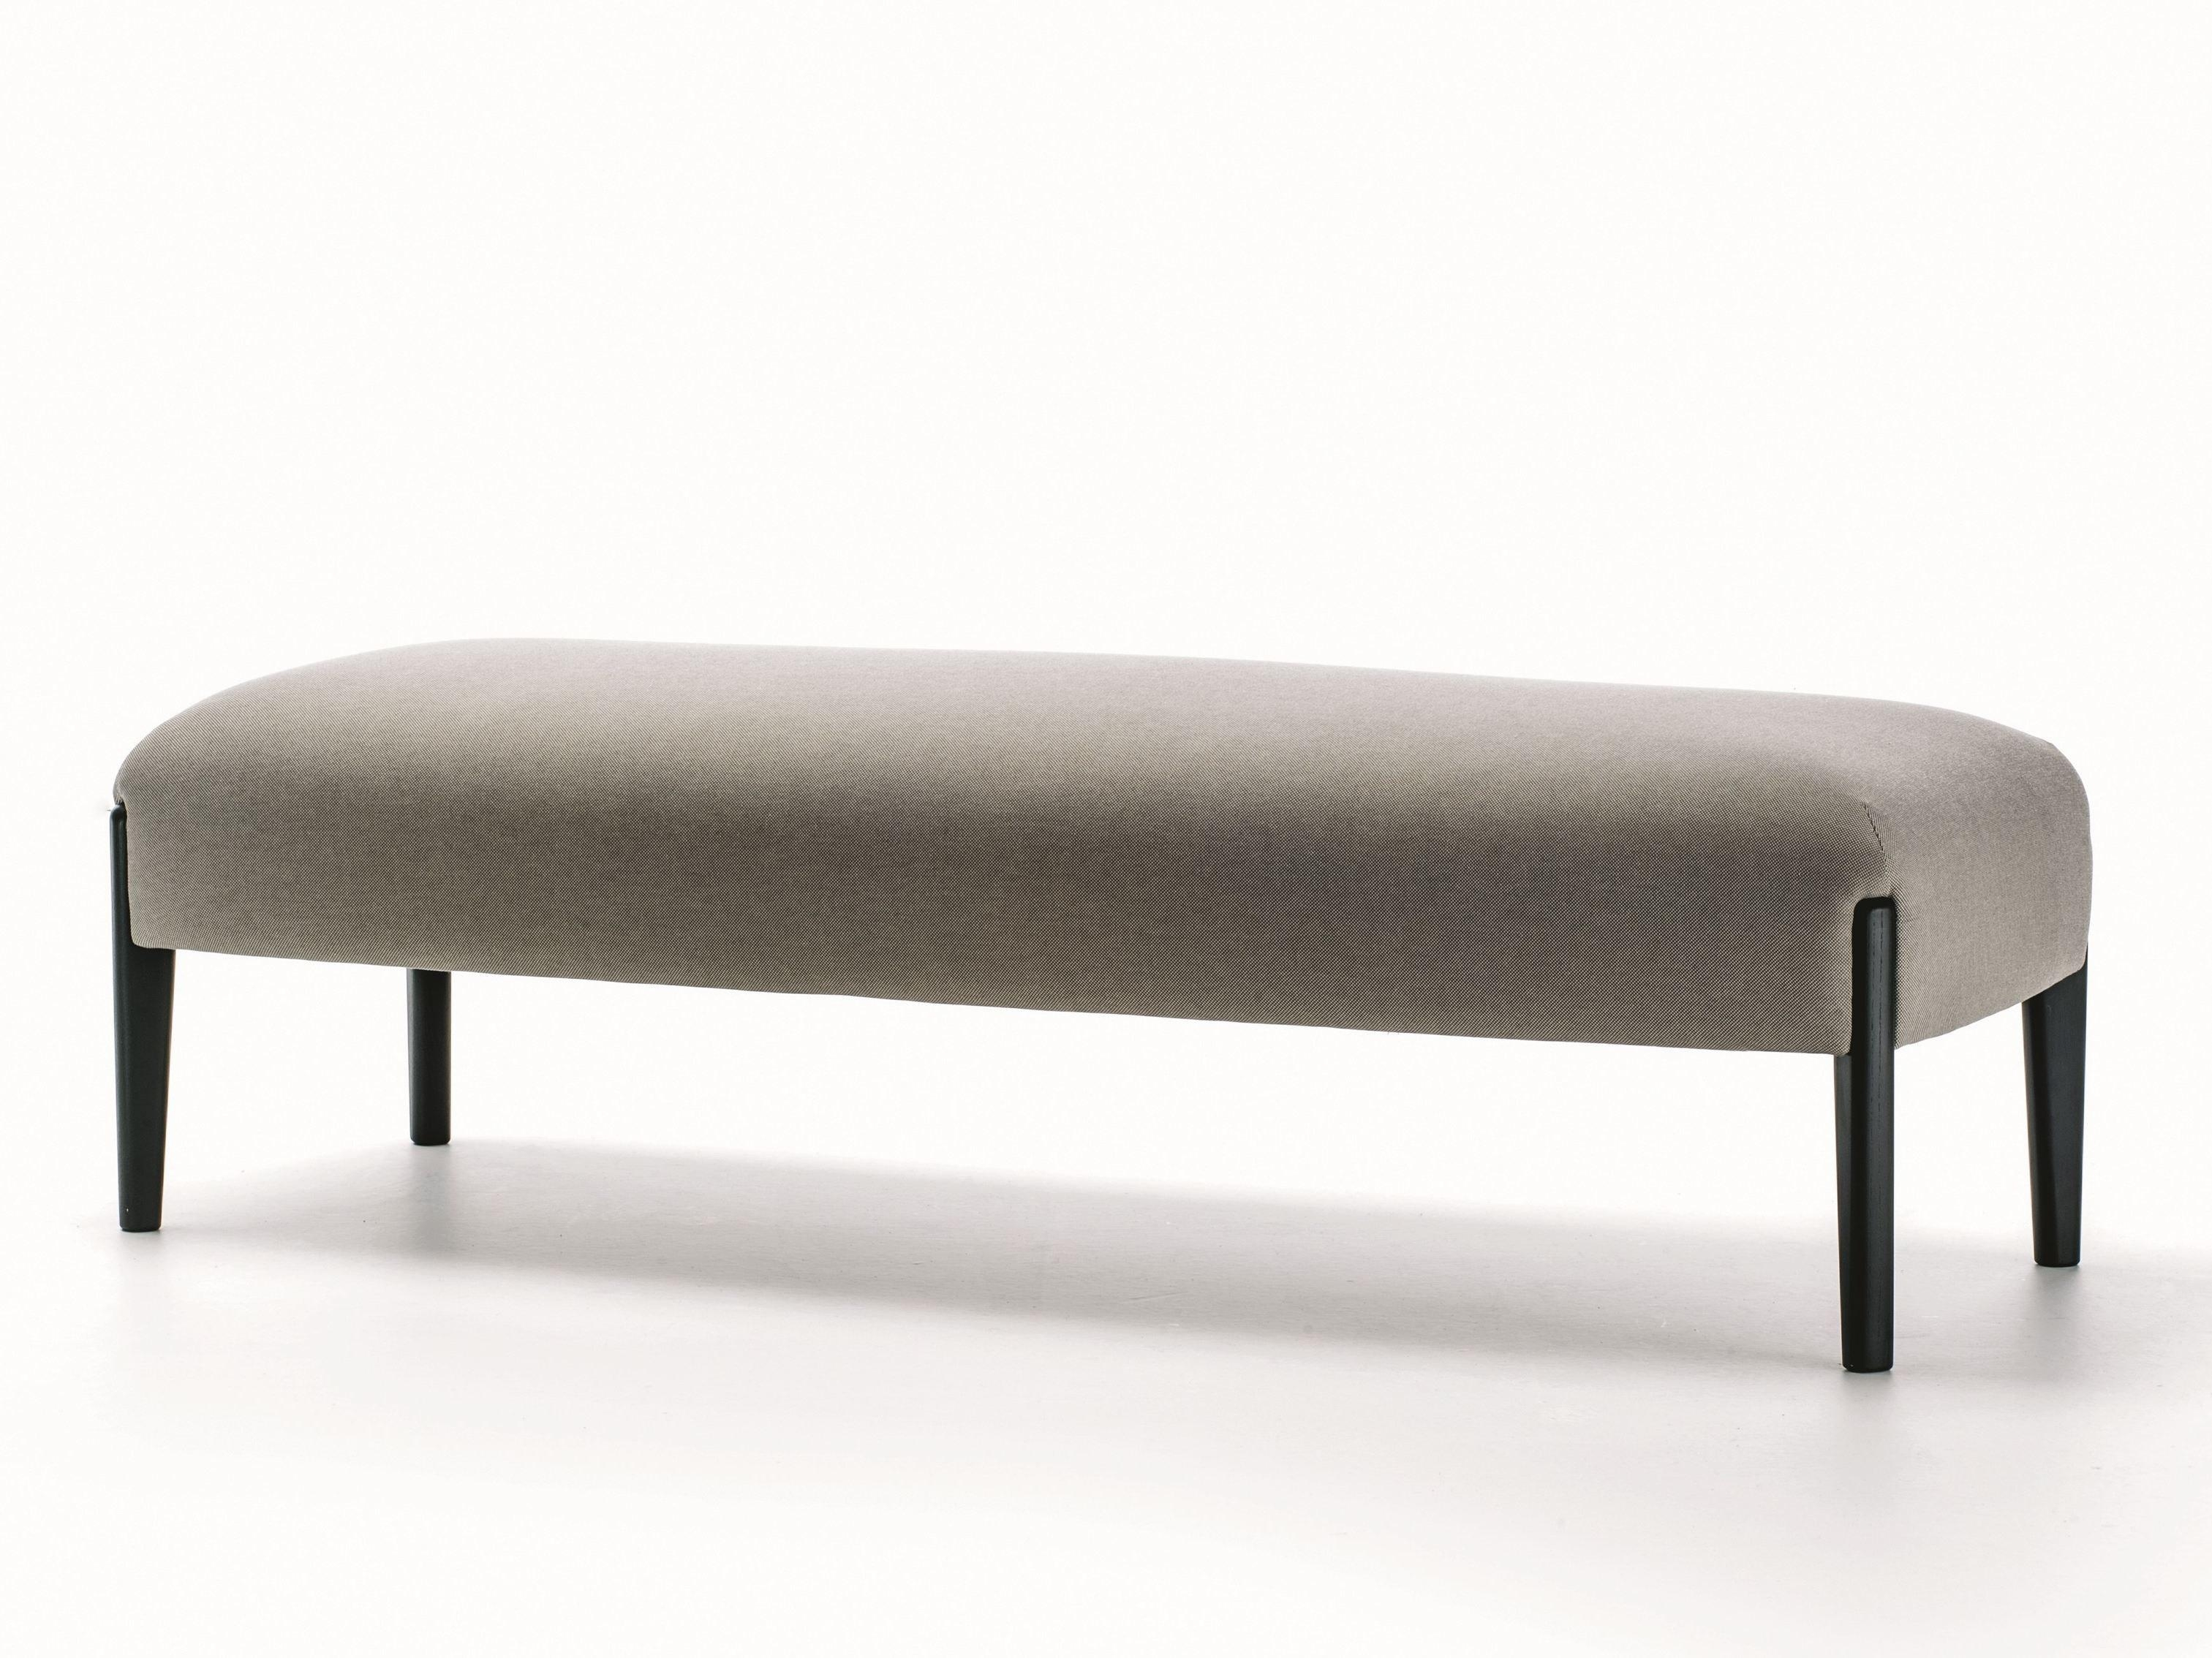 Bench Style Sofa With Ideas Hd Gallery 25307 | Kengire For Bench Style Sofas (Image 8 of 20)